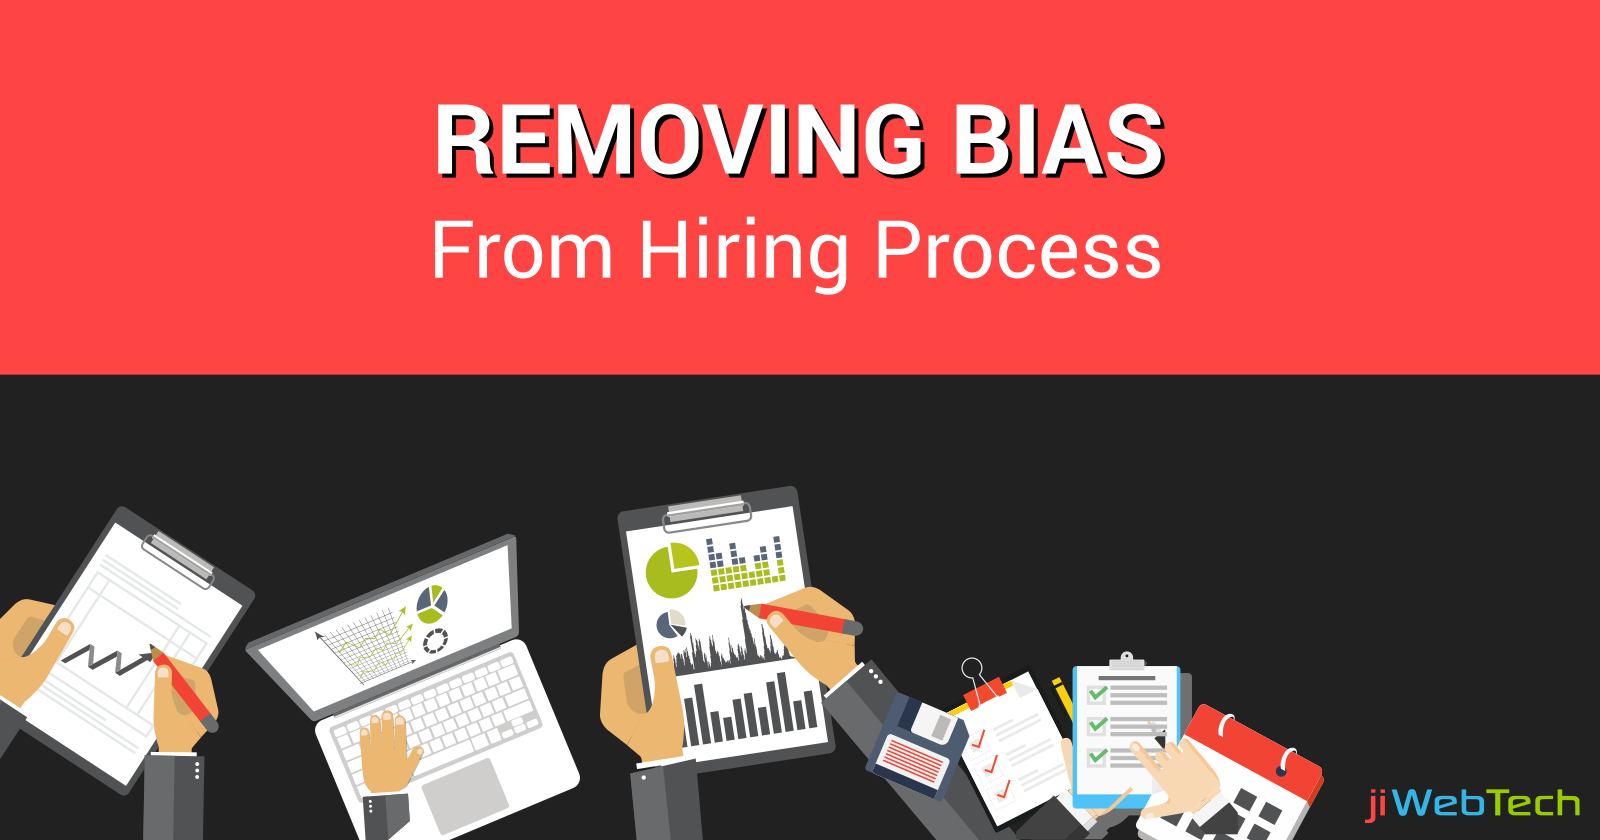 Removing Bias From Hiring Process of Your Organization